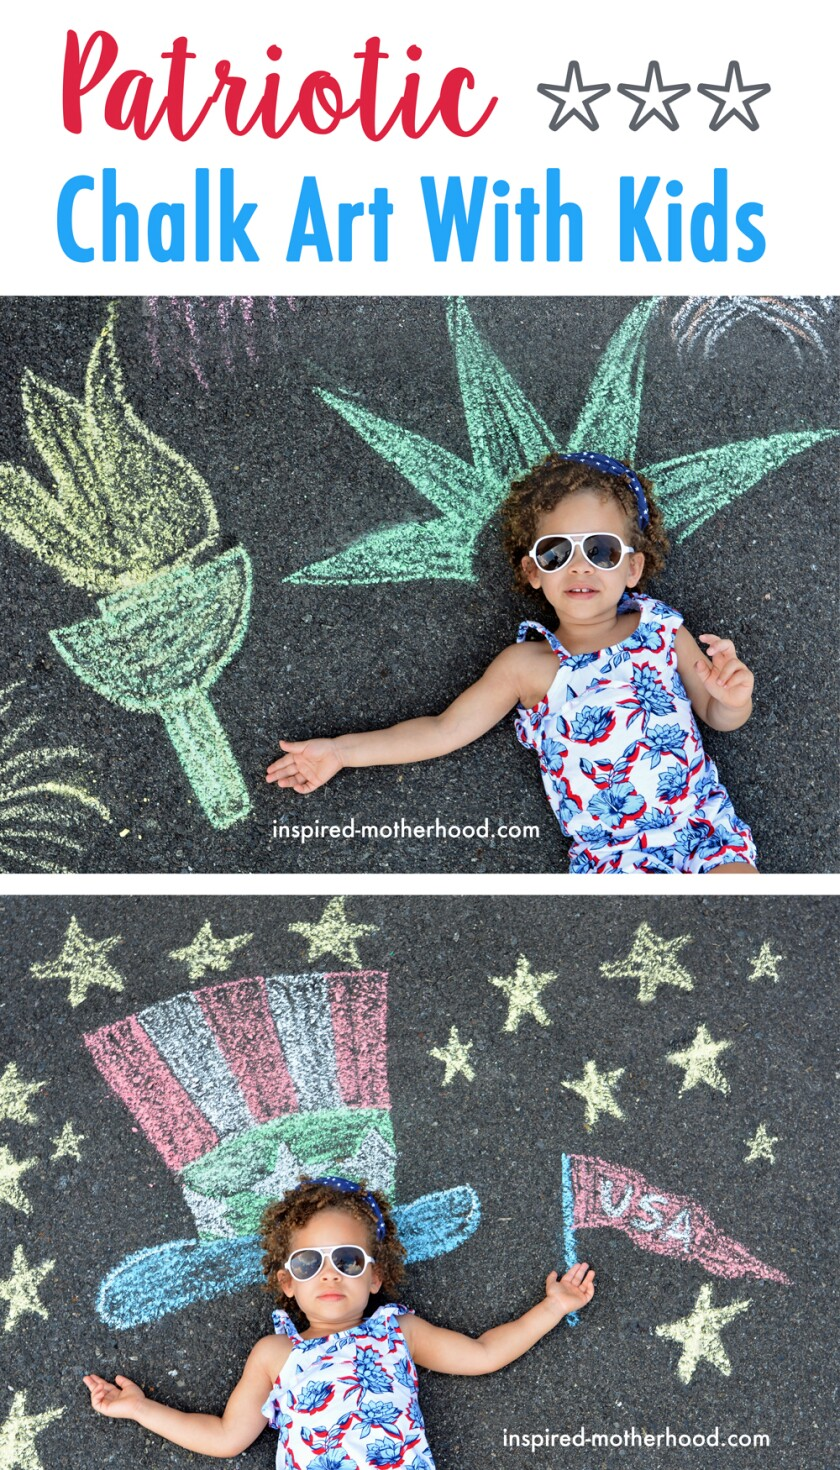 Become the hit of the neighborhood — and Instagram — with creative Fourth of July chalk art.